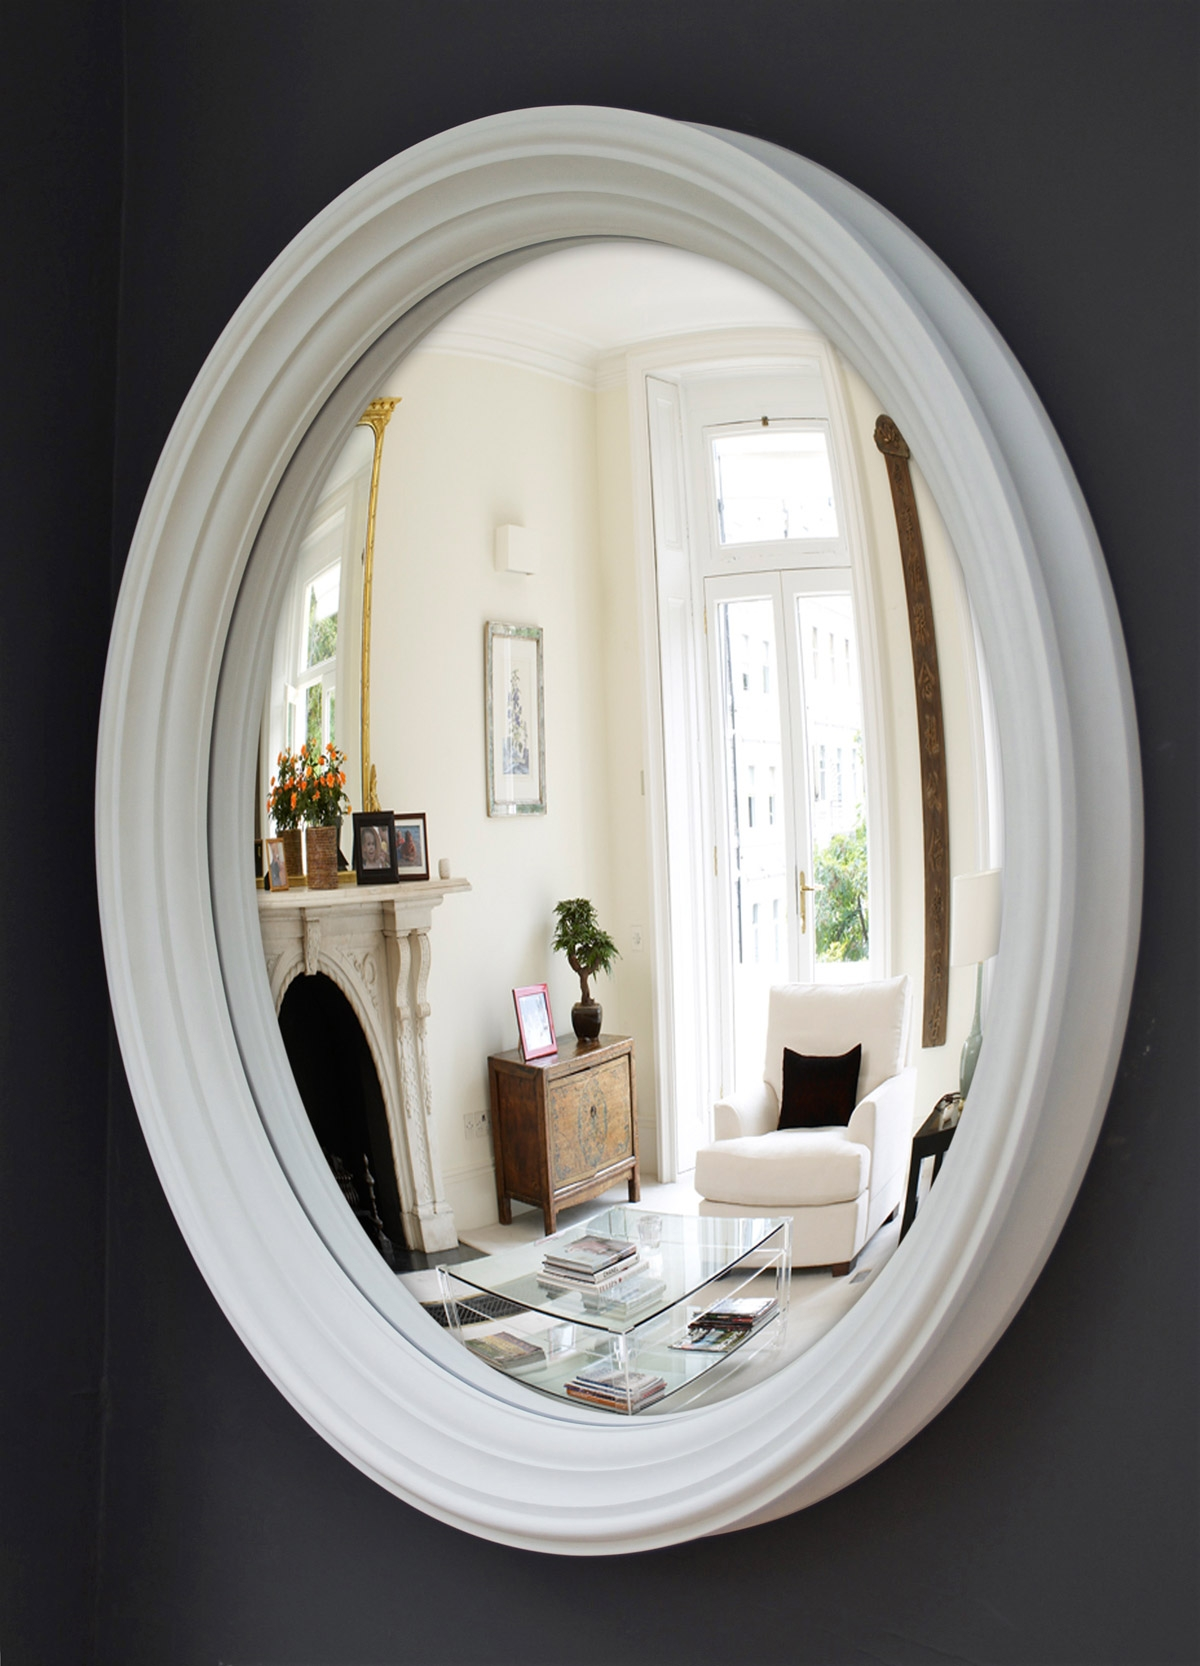 Why You Need A Large Convex Mirror Omelo Decorative Convex Pertaining To Decorative Convex Mirrors (Image 15 of 15)